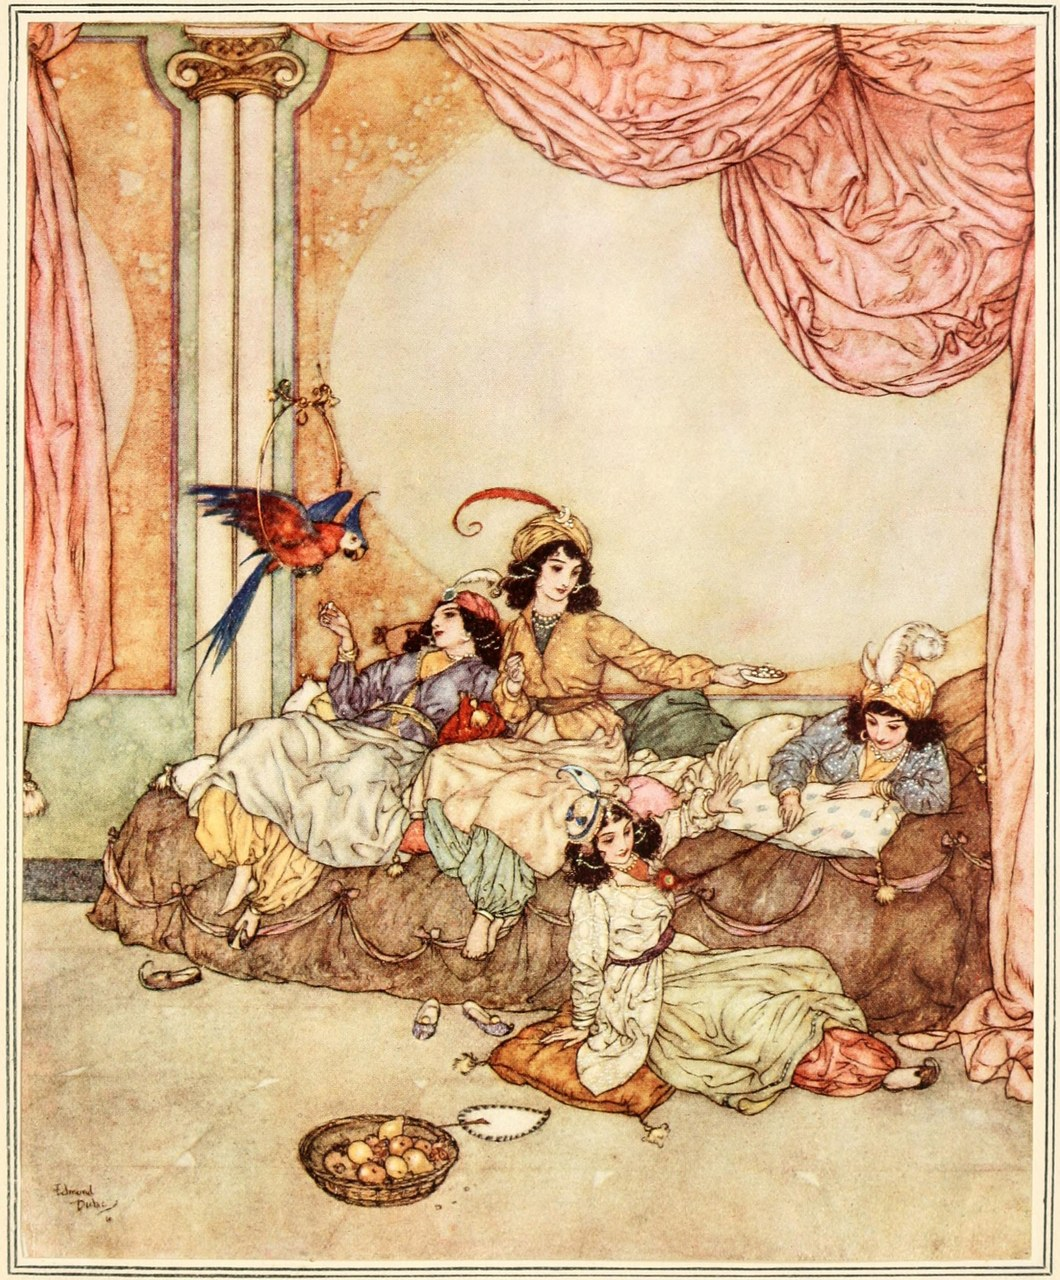 Arthur Quiller-Couch, The Sleeping Beauty and Other Fairy Tales From the Old French, illustrato da Edmund Dulac, 1910 (Wikimedia Commons)